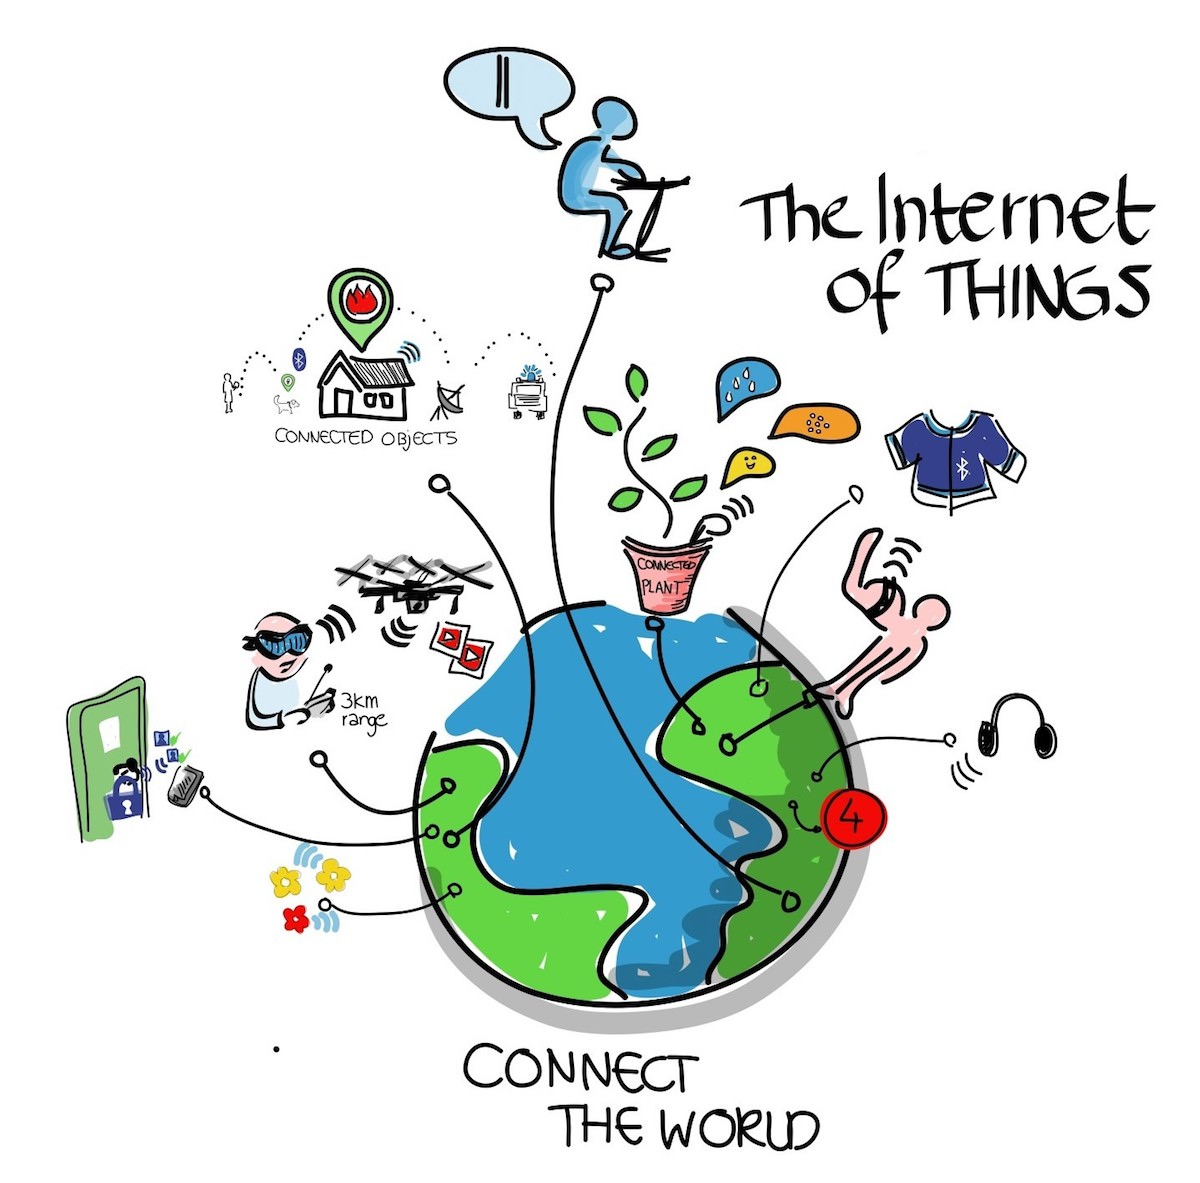 Internet of Things by [Esther Emmely Gons](http://wilgengebroed.nl/)